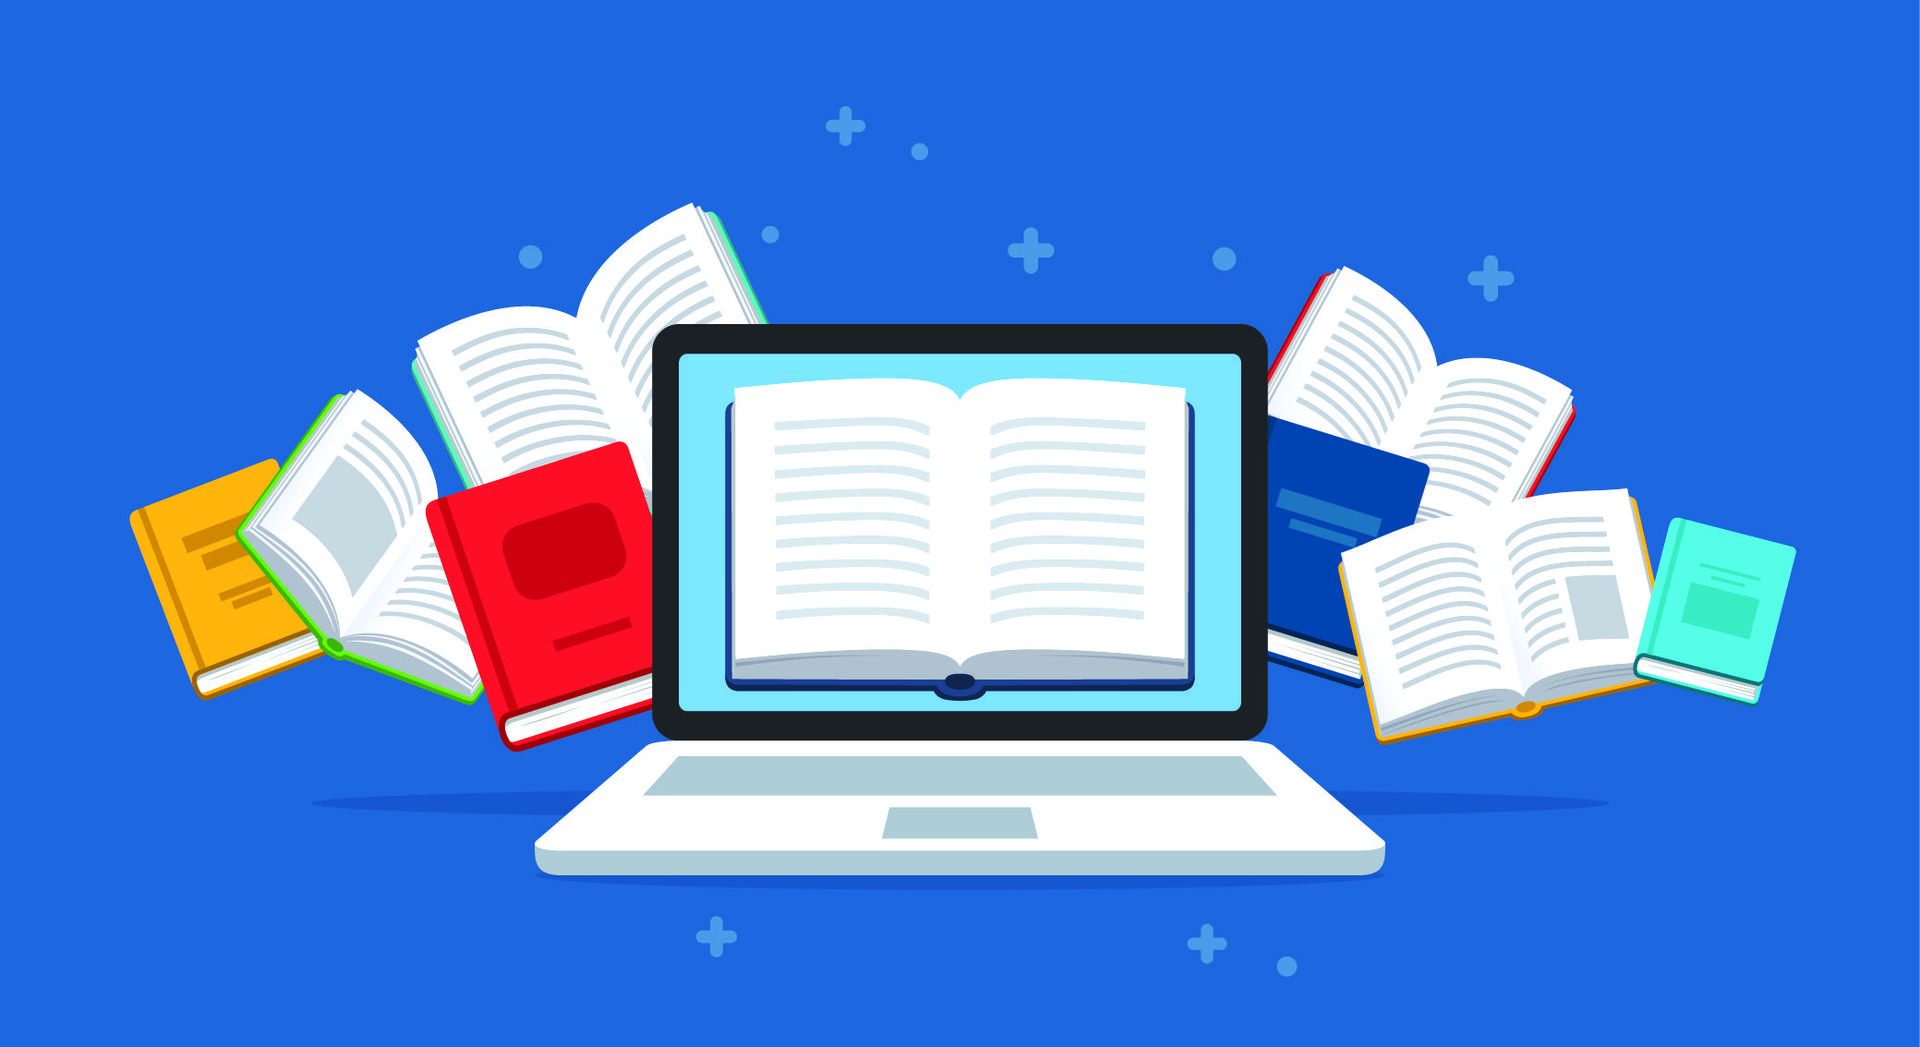 Clip art, computer screen surrounded by open books